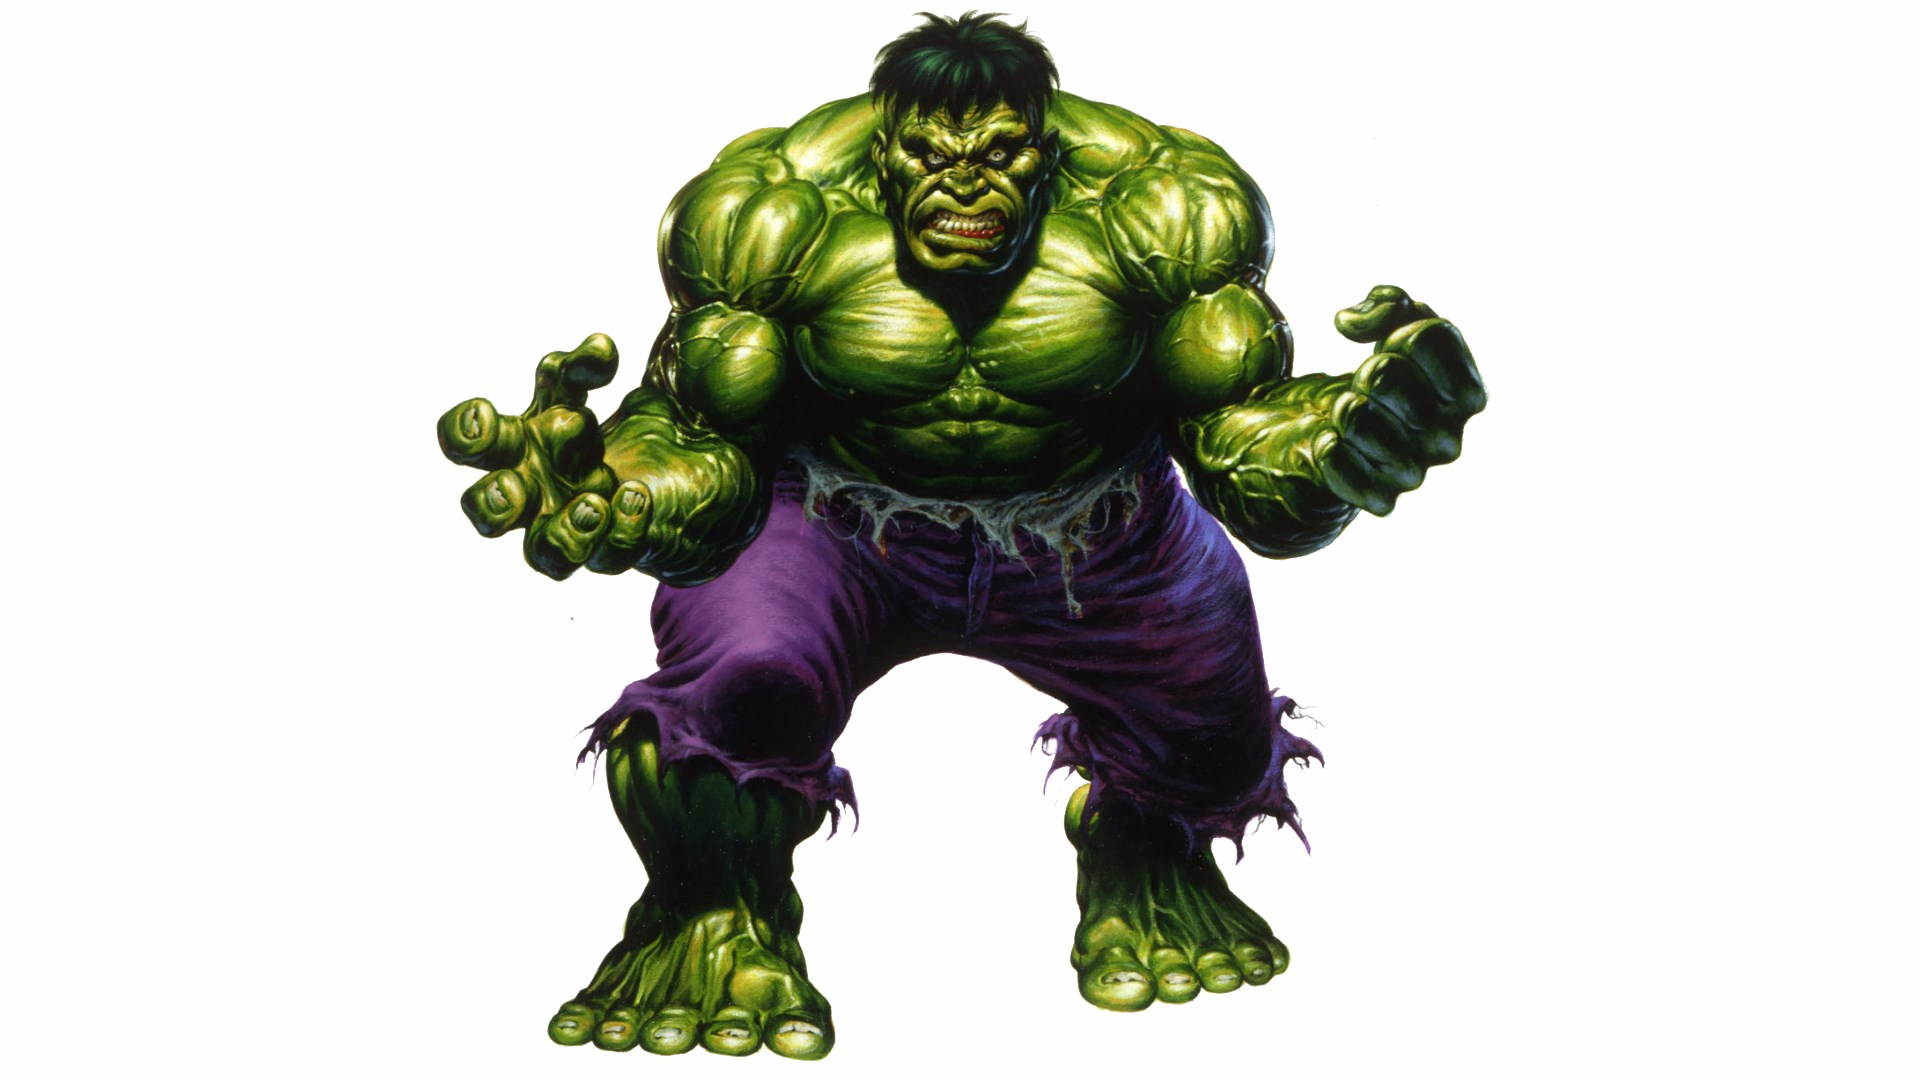 1920x1080-Widescreen-hulk-wallpaper-wpc5801098